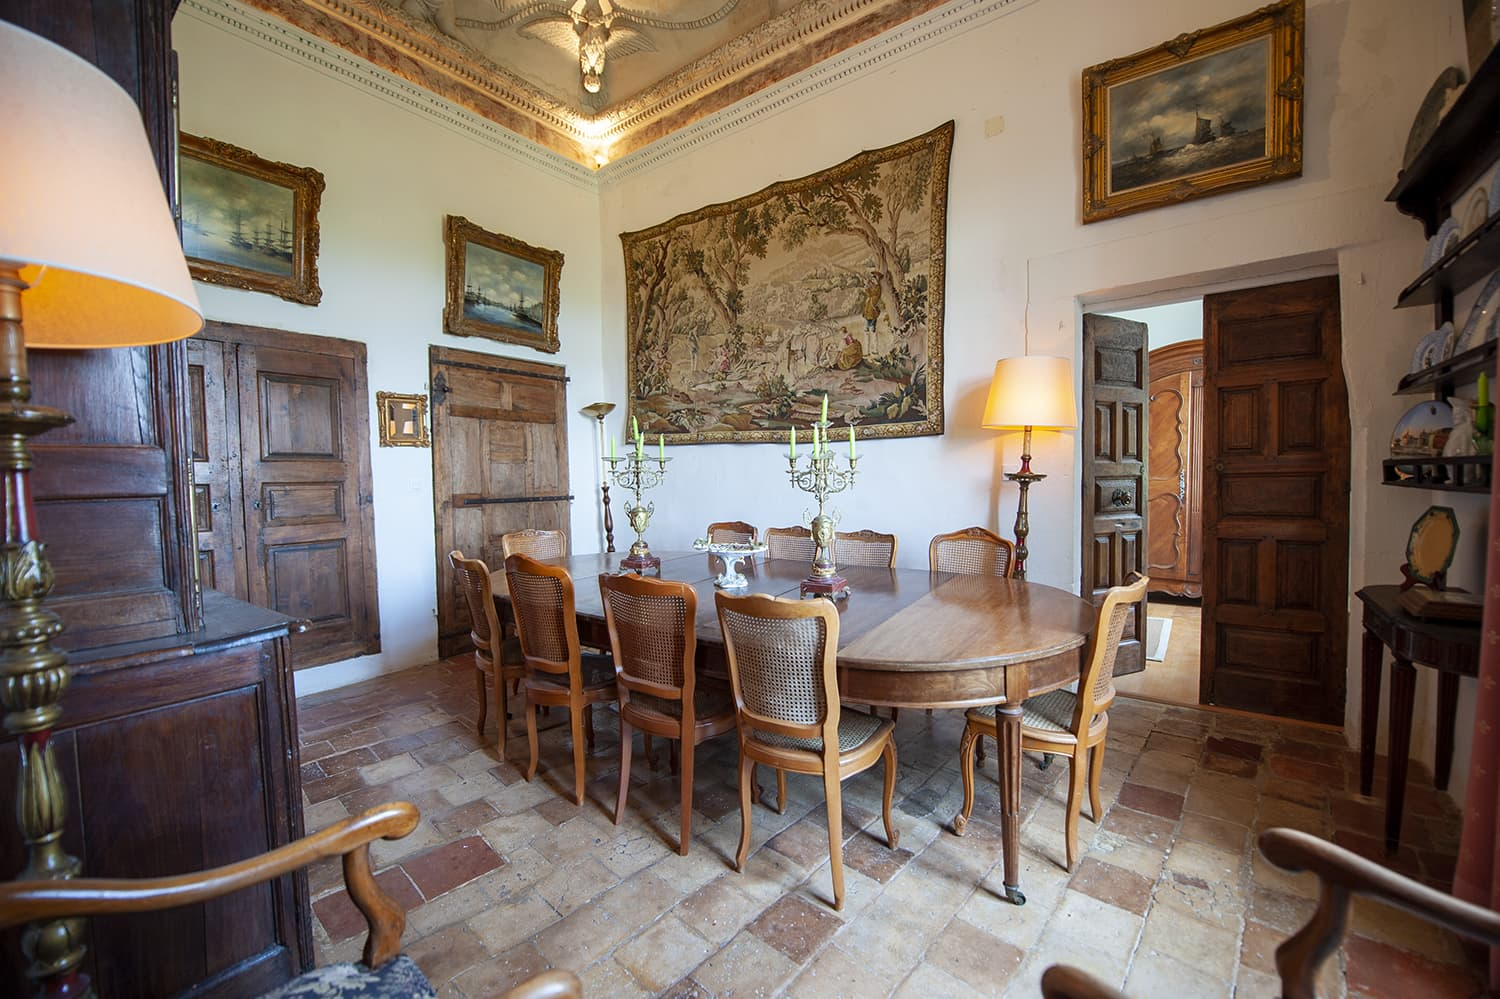 Dining room in Cazouls-lès-Béziers holiday château